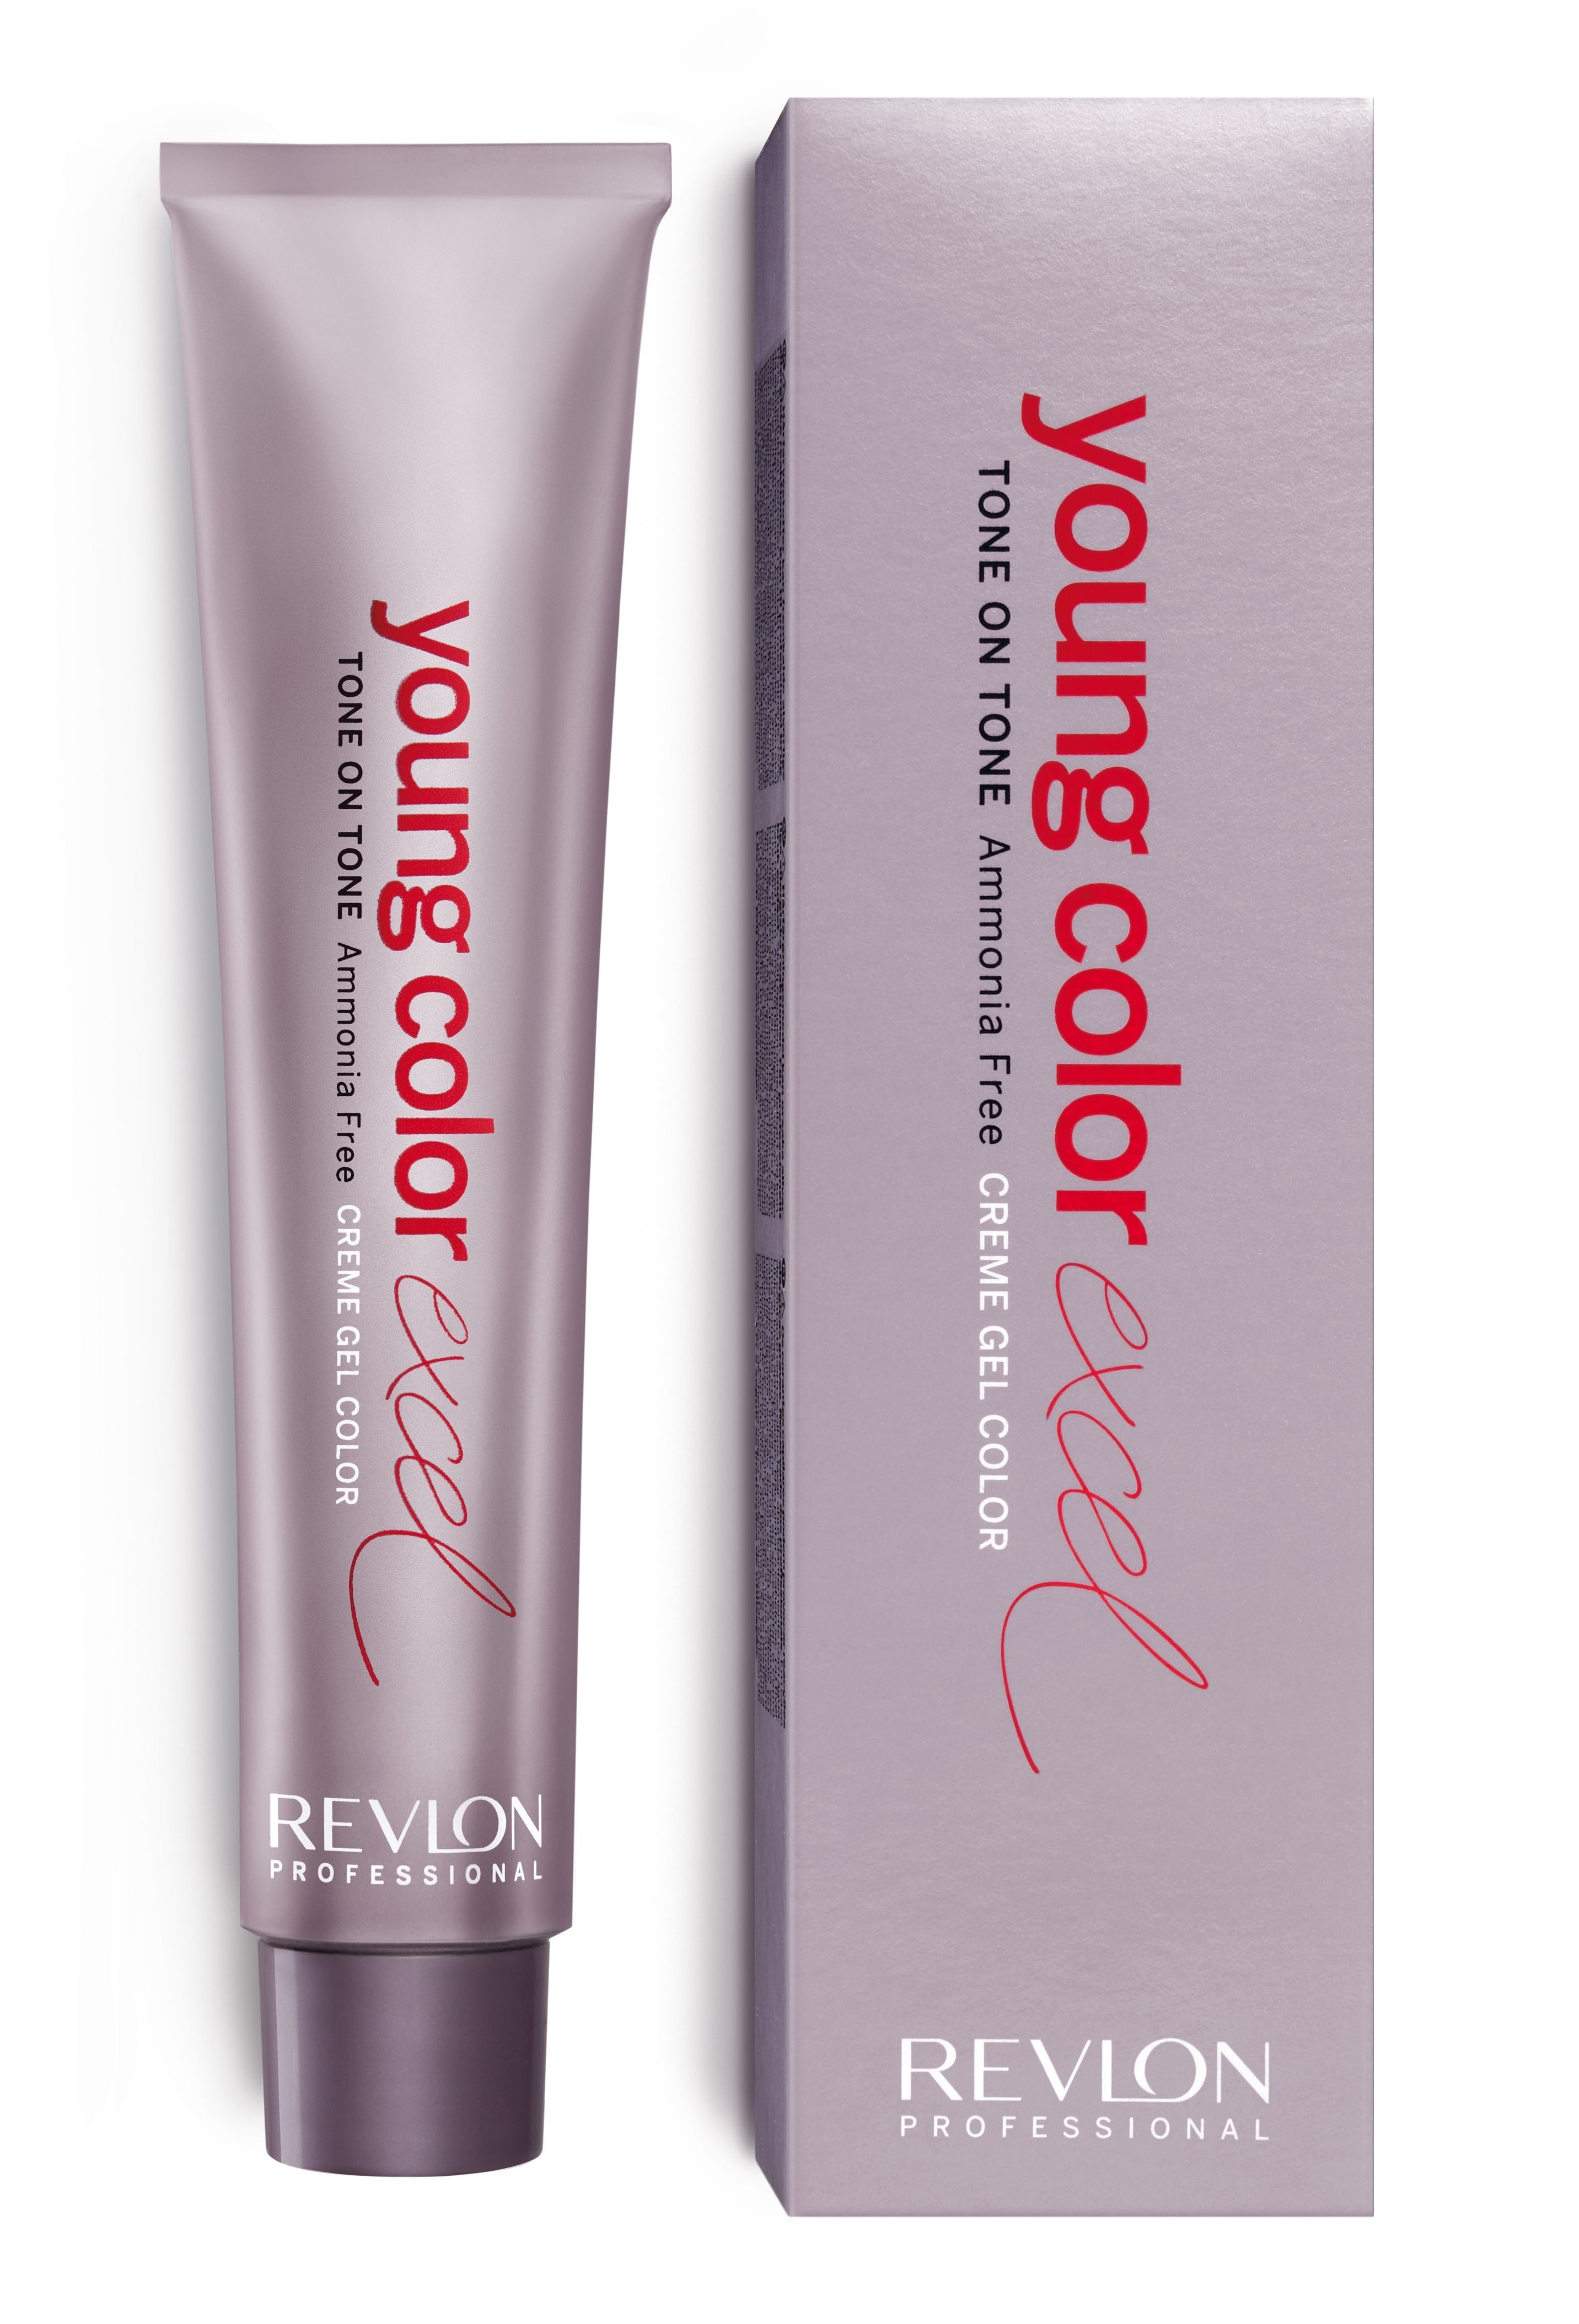 Revlon professional 7-45 крем-гель полуперманентный, медный махагон / young color excel 70 мл